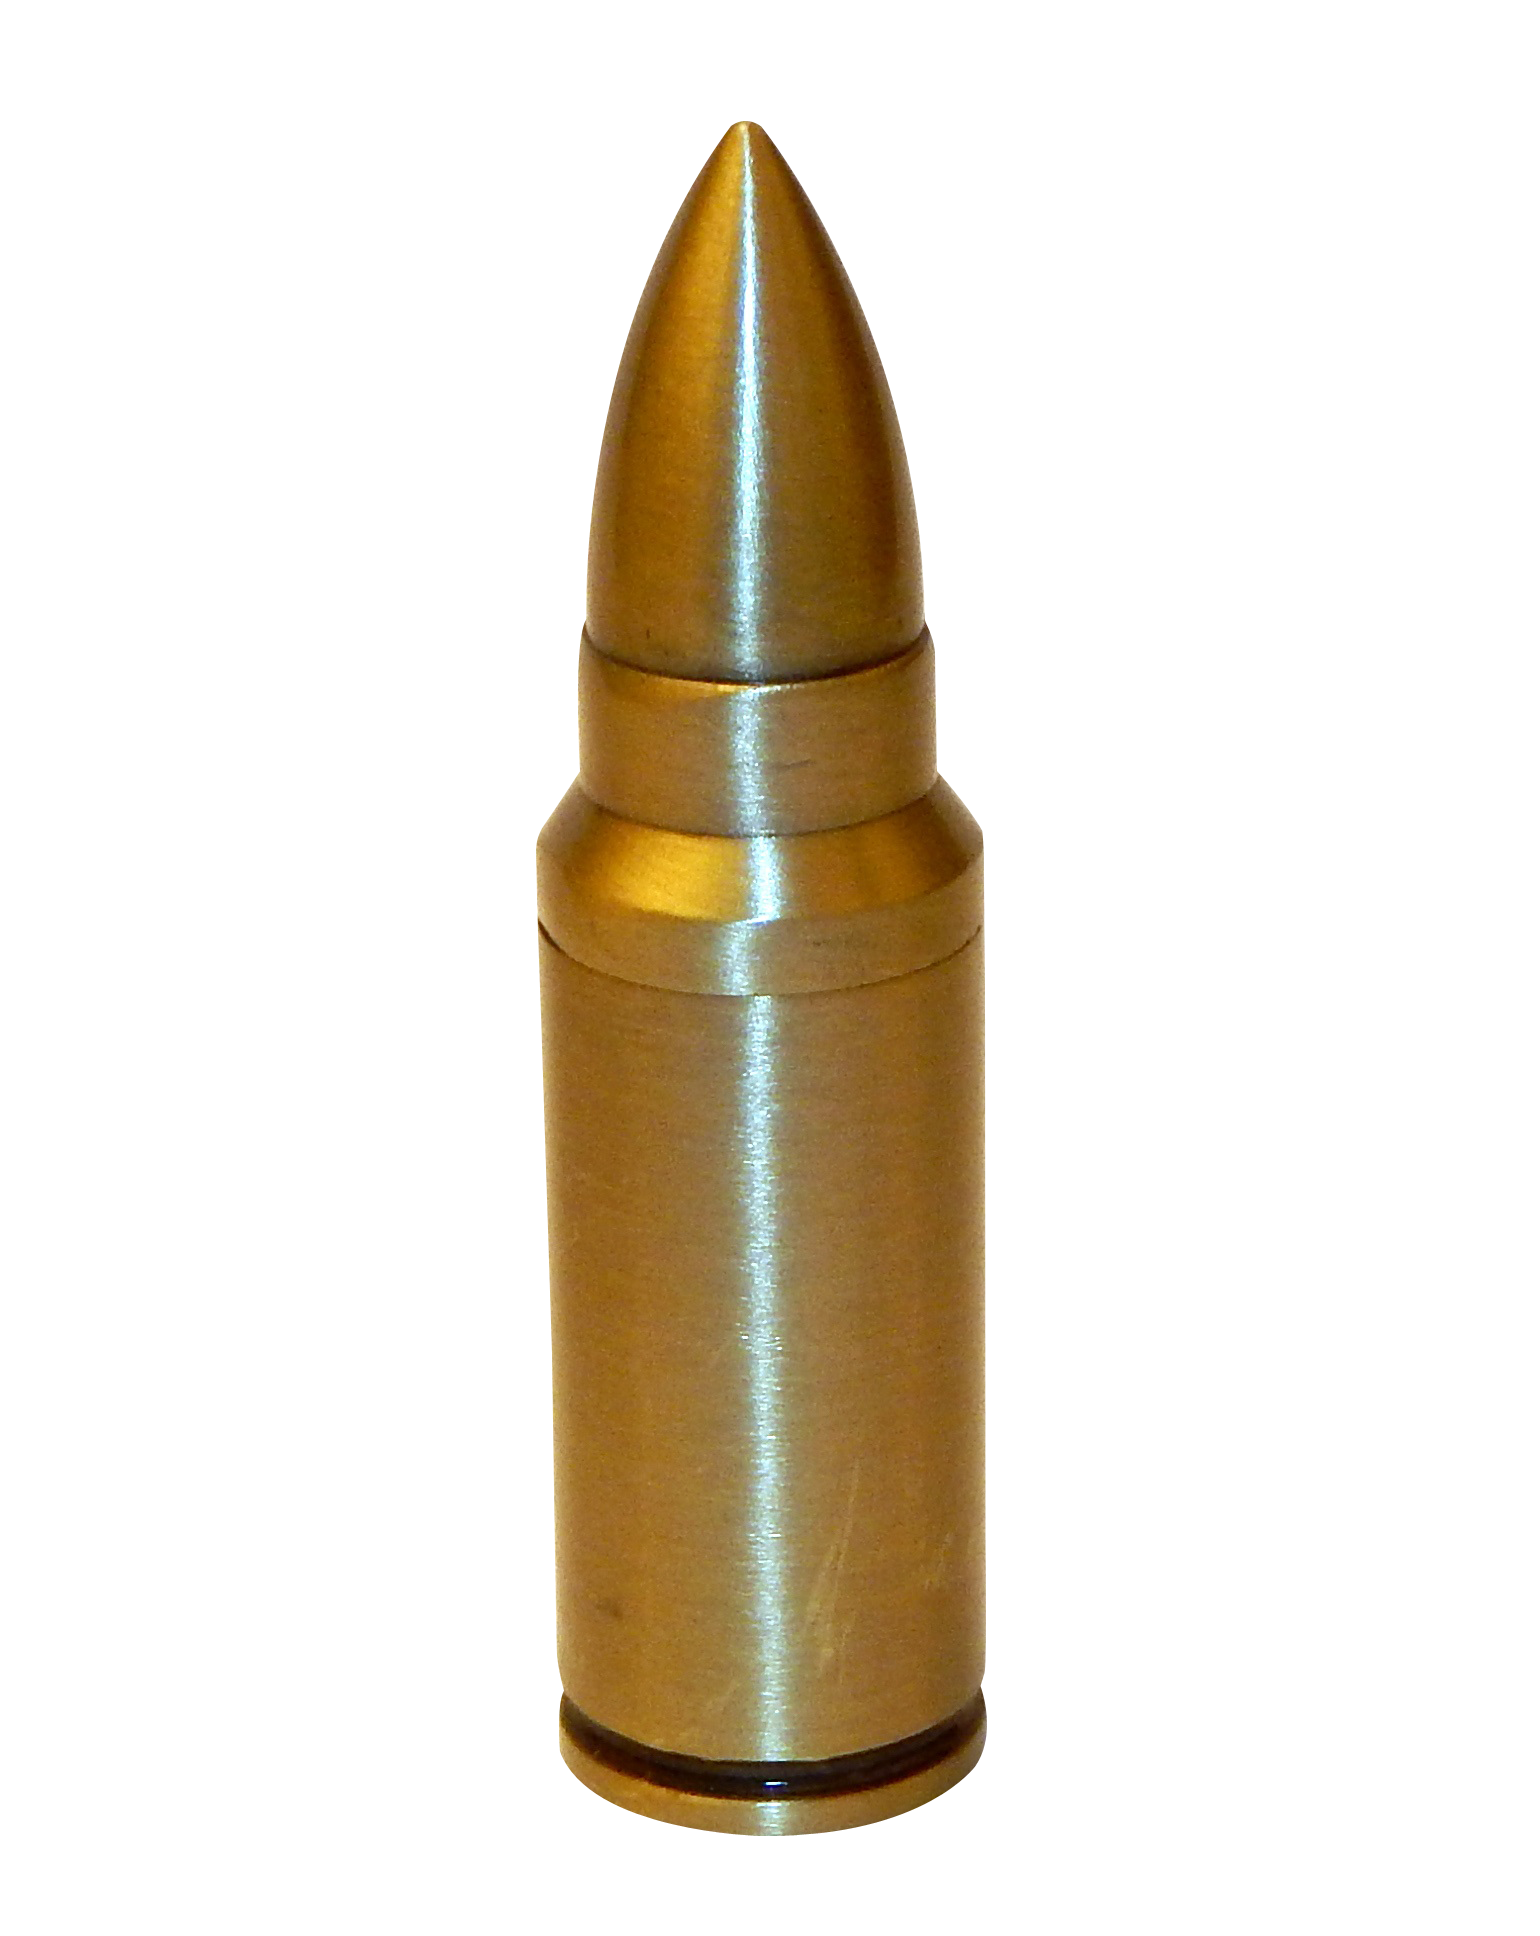 Bullet png. Transparent image best stock